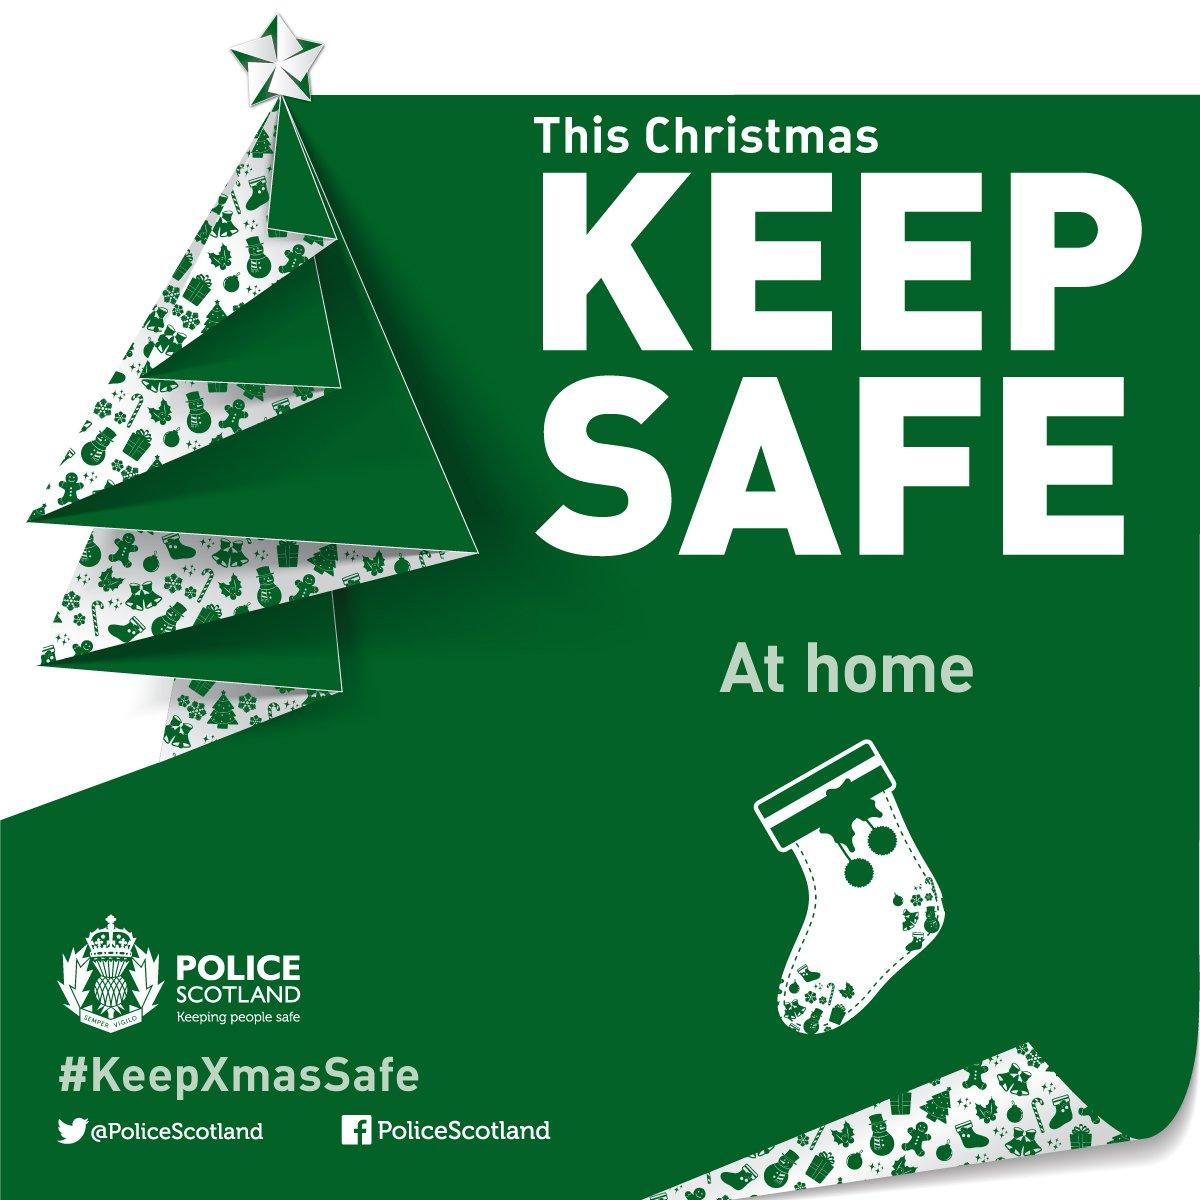 test Twitter Media - Some useful home safety advice this festive season #keepXmassafe https://t.co/ZmVJha2qn6 https://t.co/VugEiVU8Ee